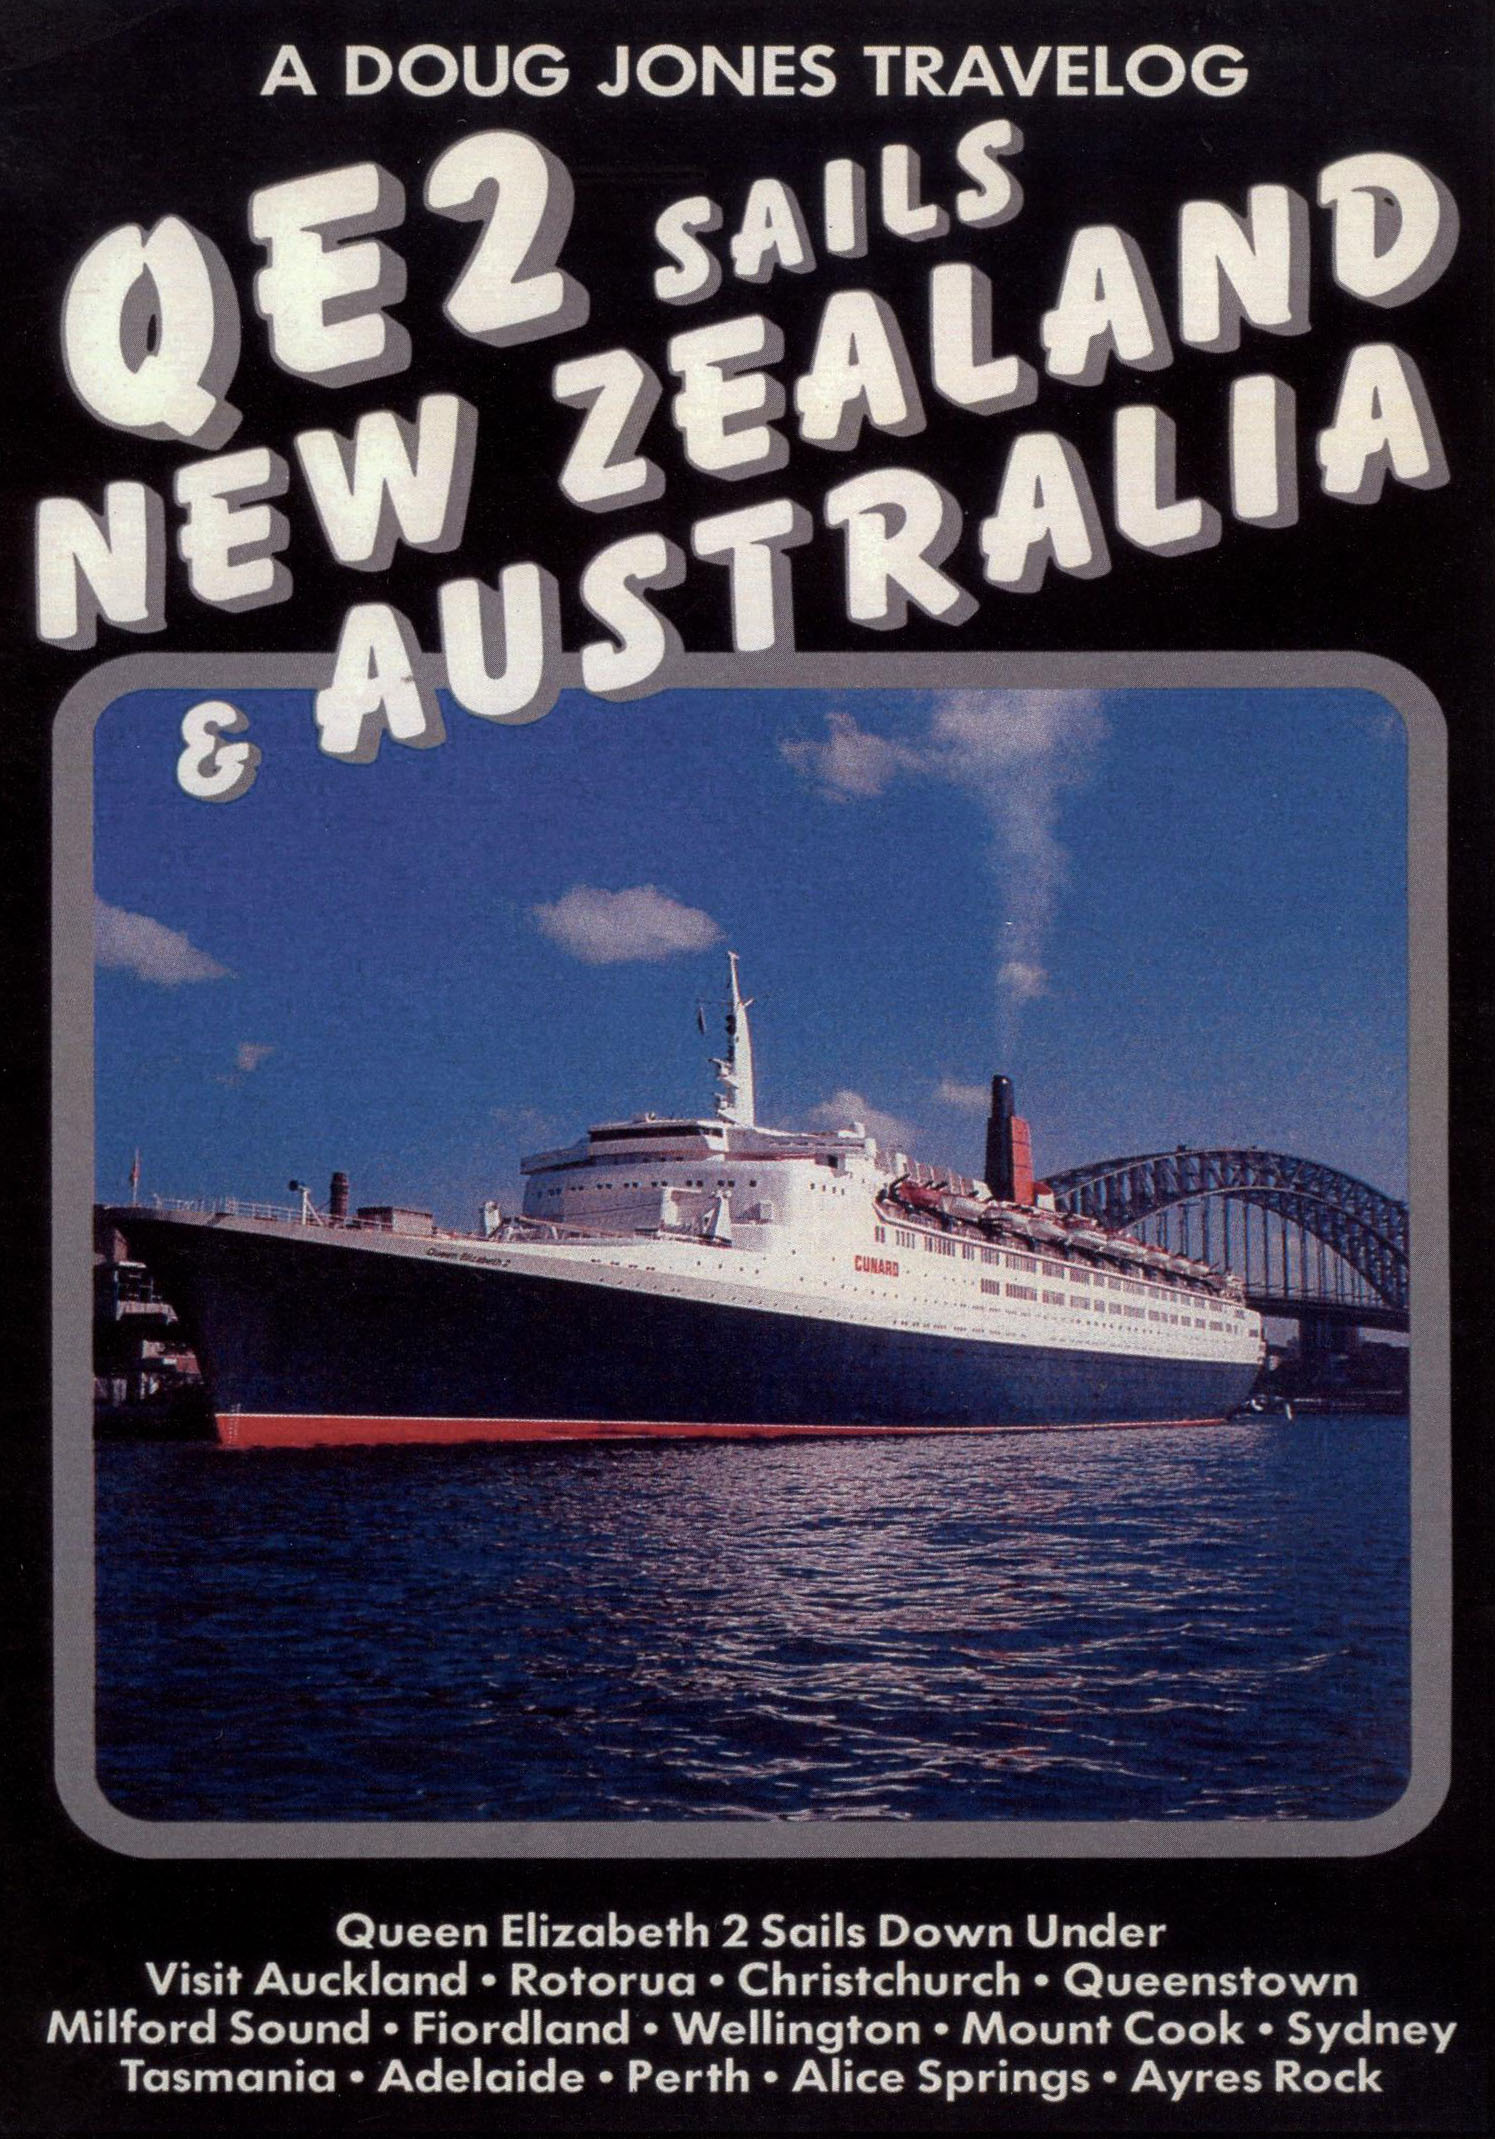 QE2 Sails New Zealand & Australia